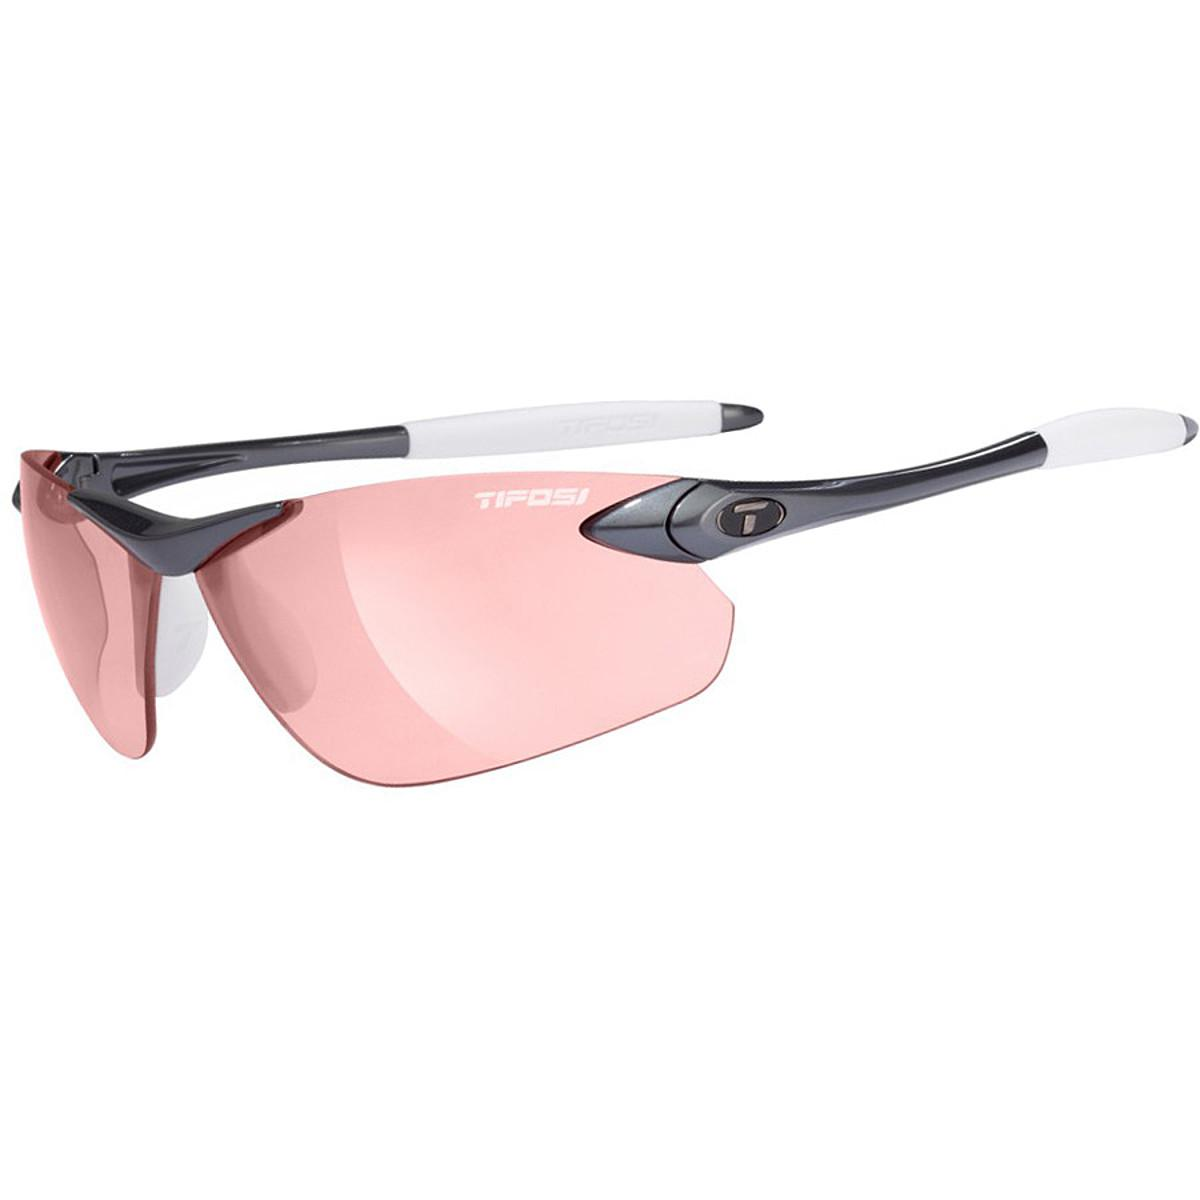 5fe27be0e3 Lyst - Tifosi Optics Seek Fc Photochromic Sunglasses in Pink